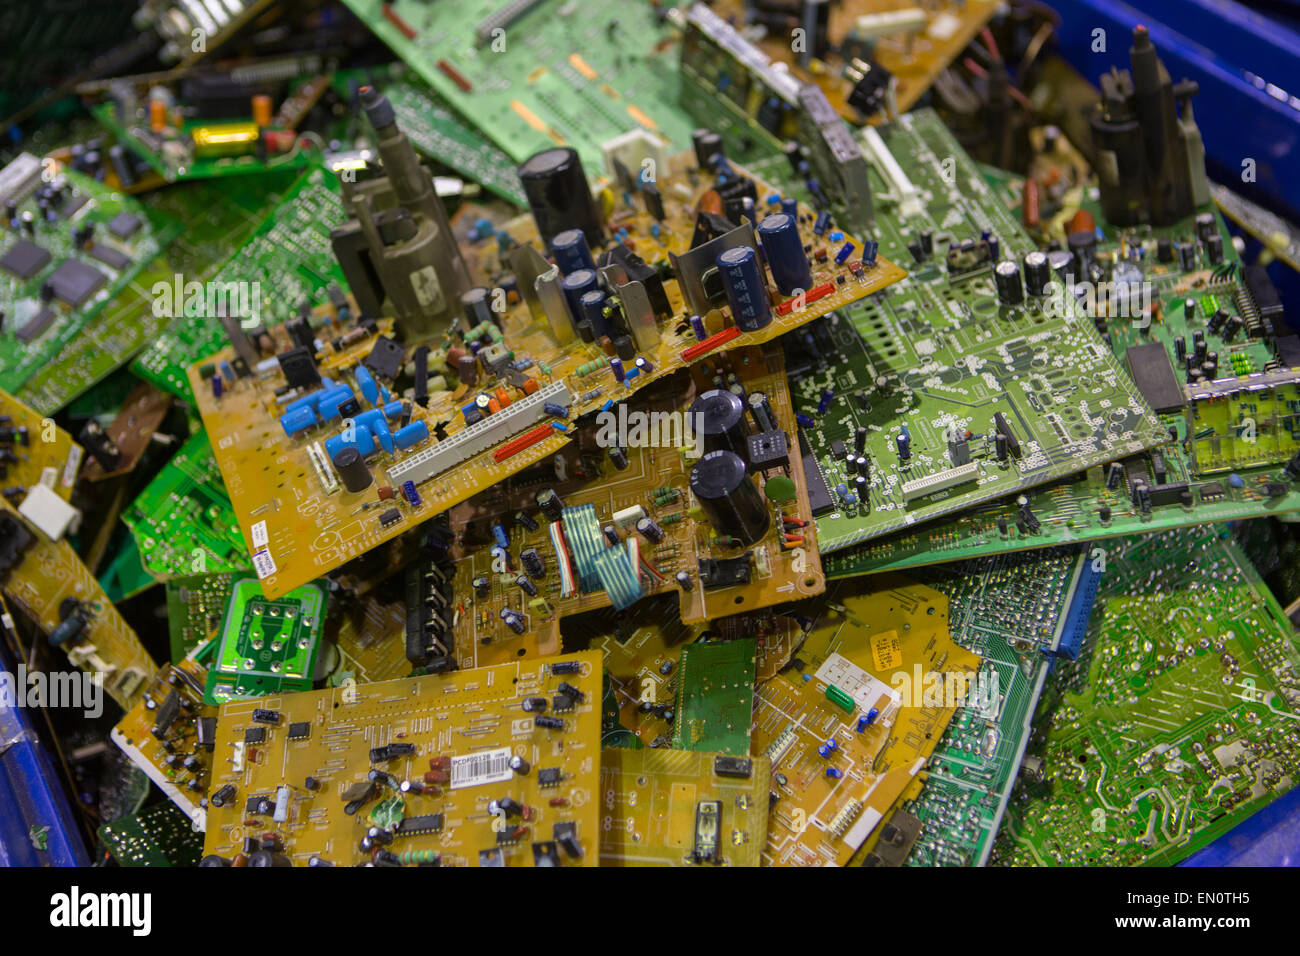 Computer Parts Recycle Stock Photos Circuit Boards Concept Of Electronic Junk Recycling Image